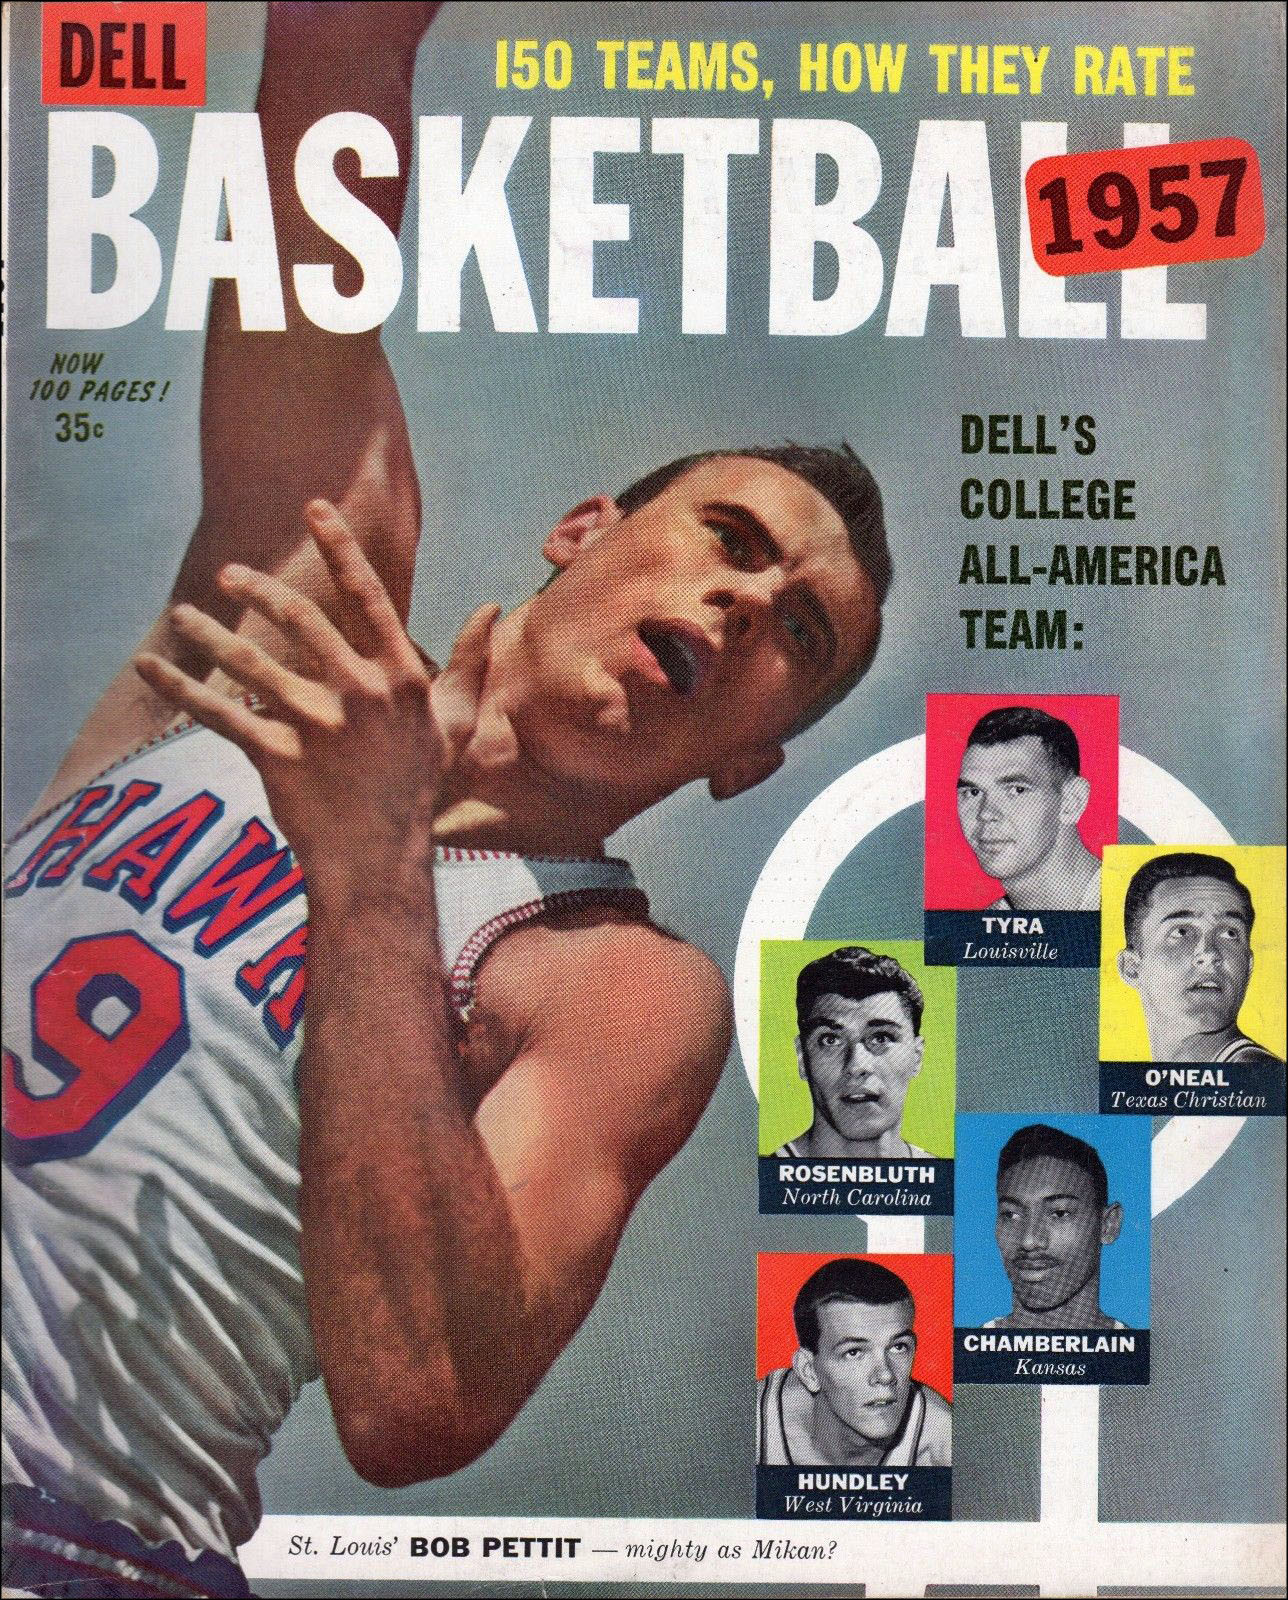 Magazine Rack: Dell Basketball 1957 feat. Bob Pettit